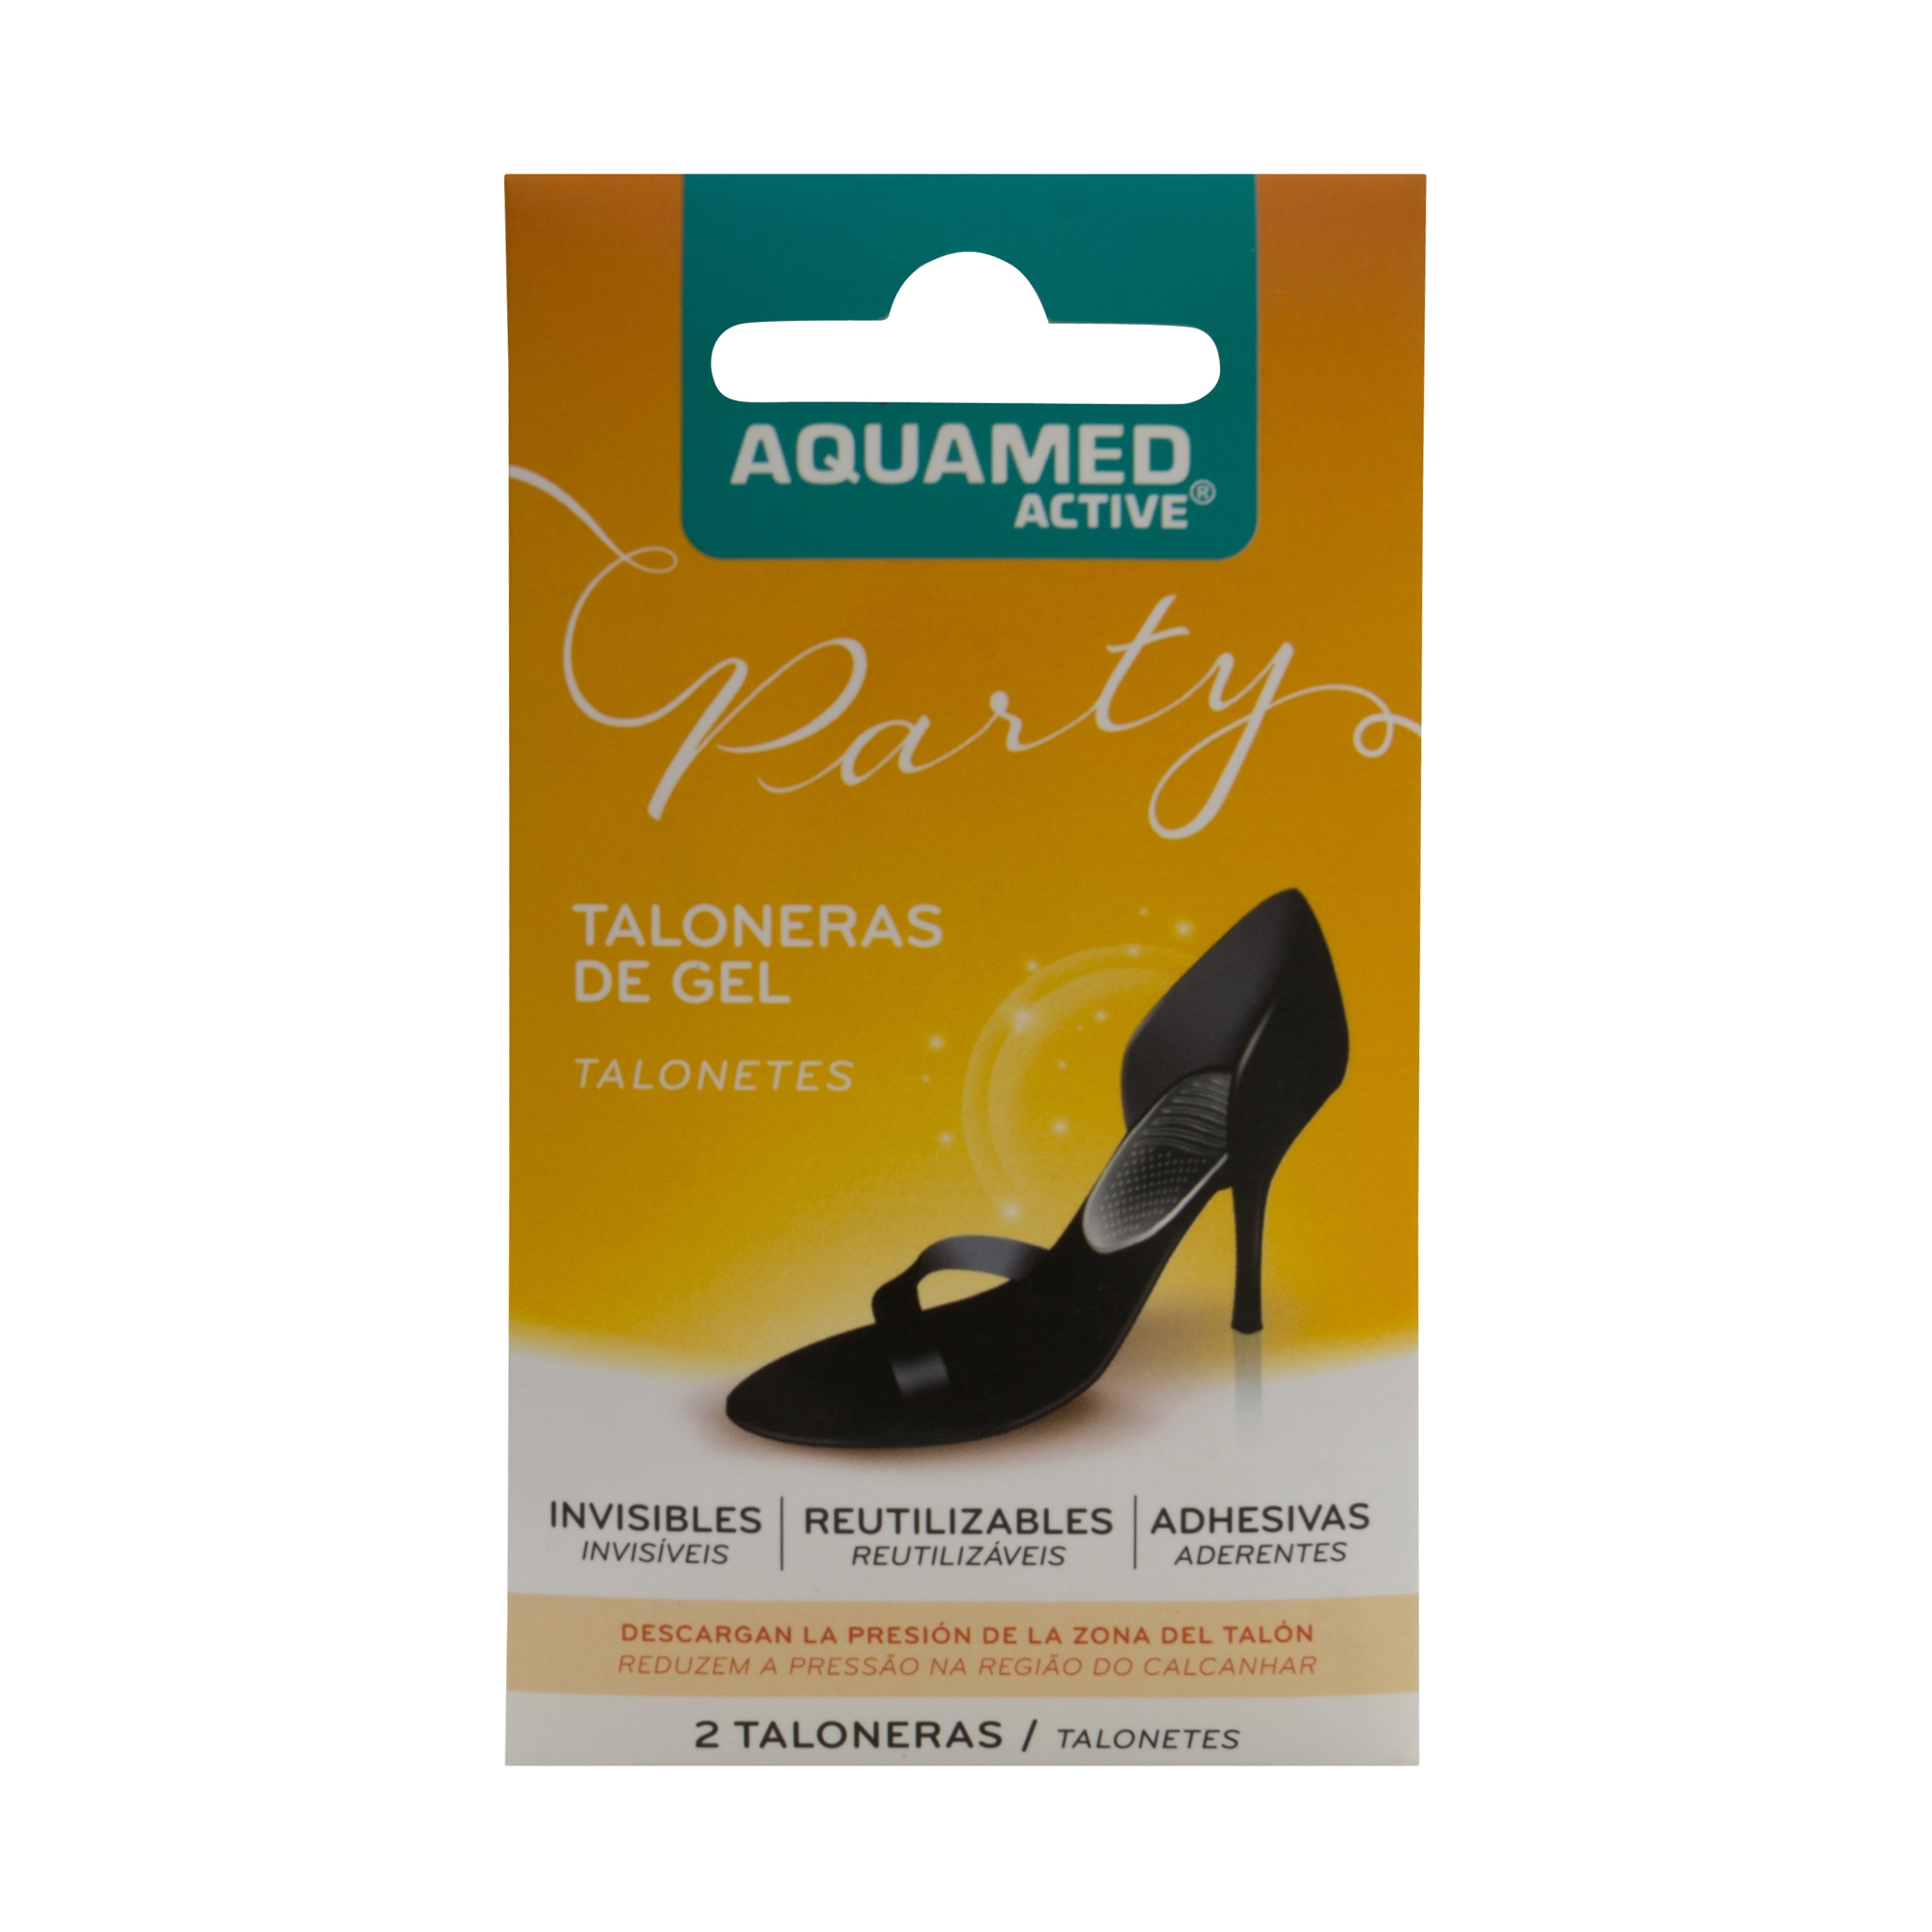 Aquamed Active taloneras gel 2uds